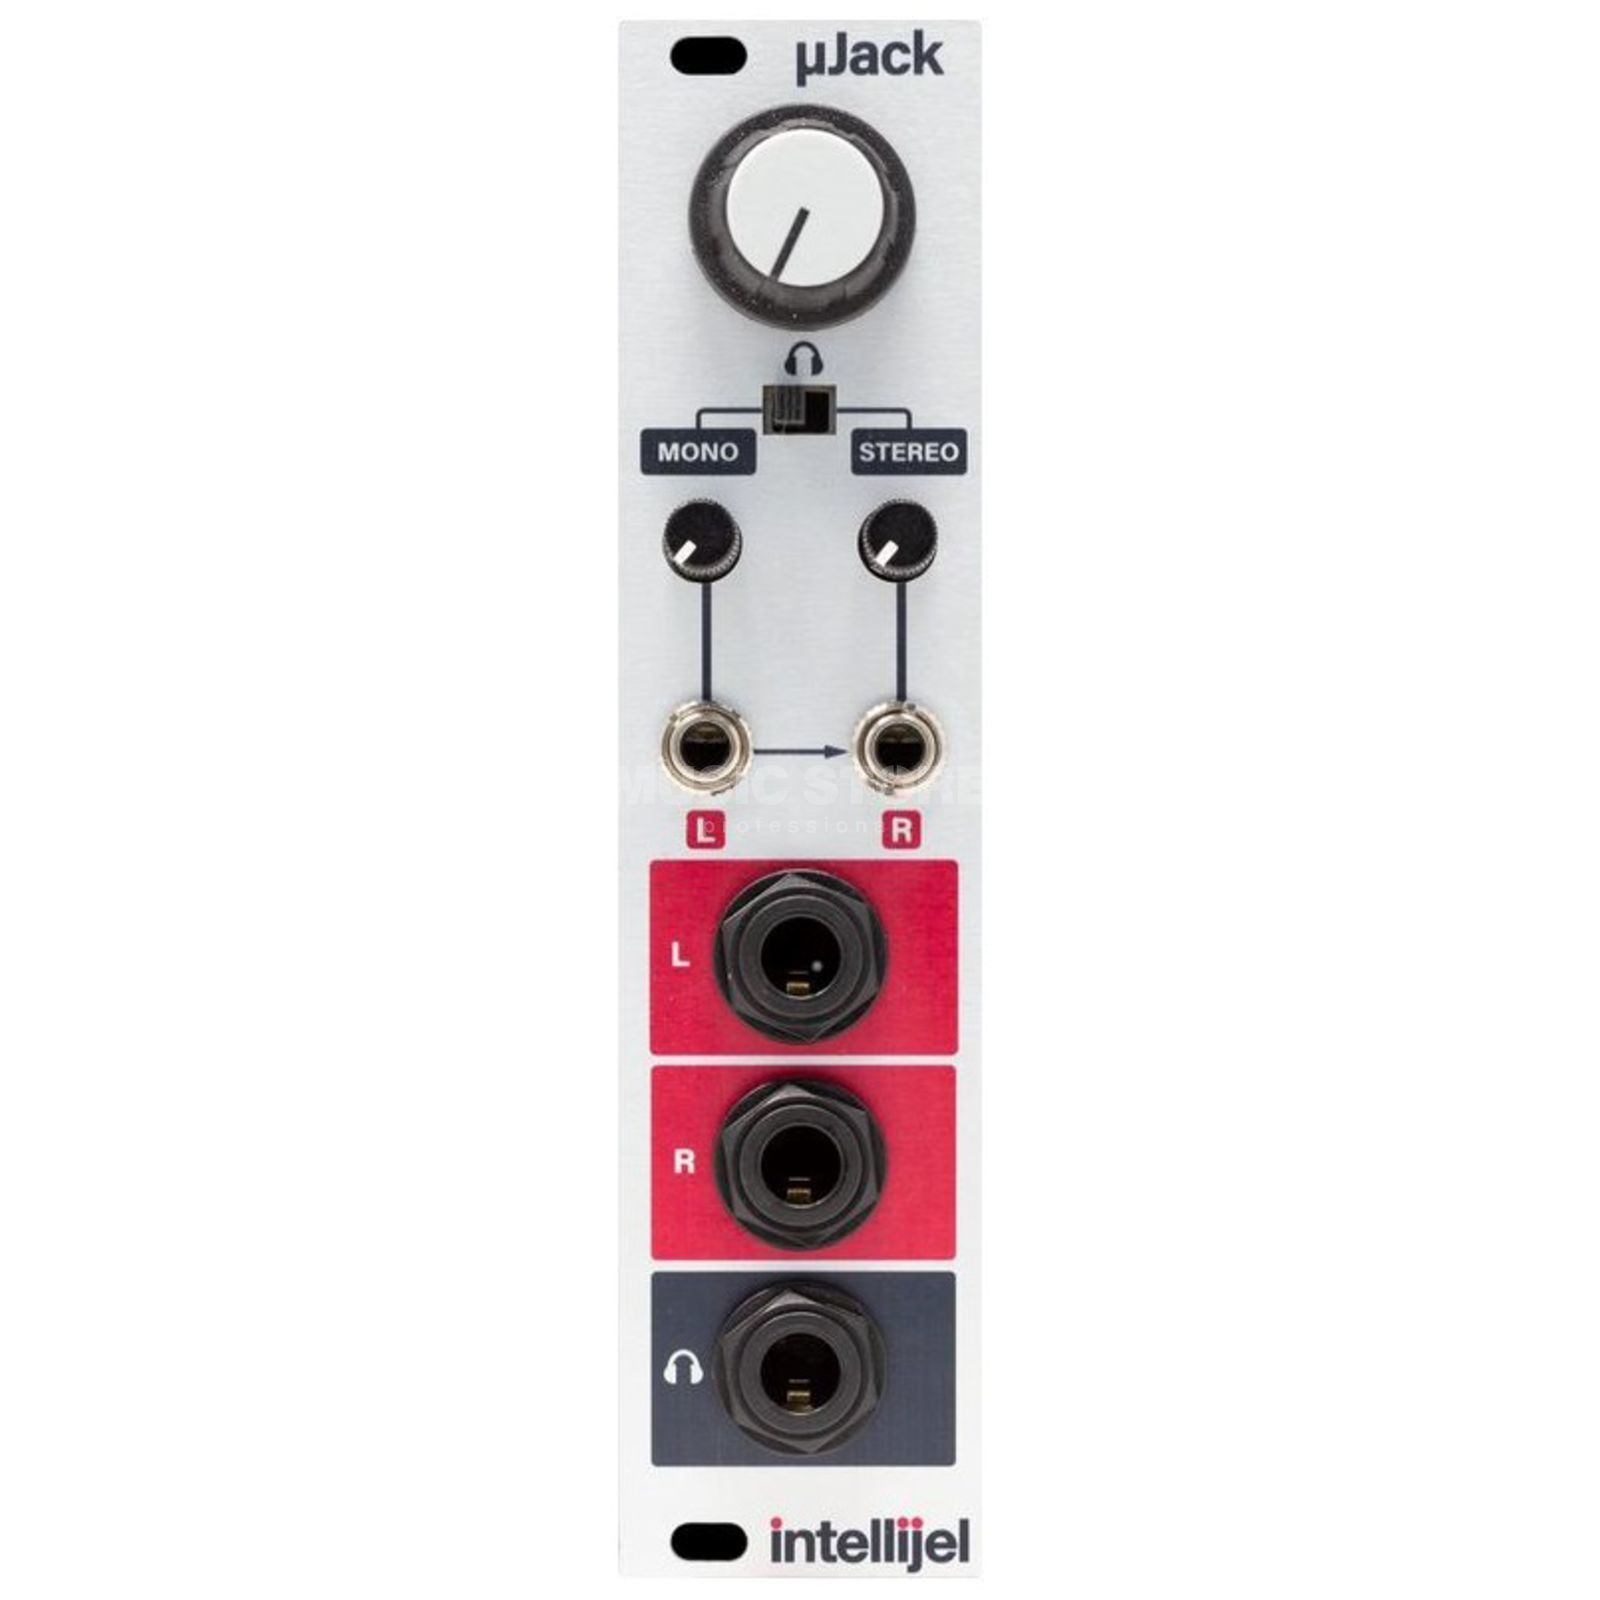 Intellijel uJack Headphone and Stereo Line Out Produktbild